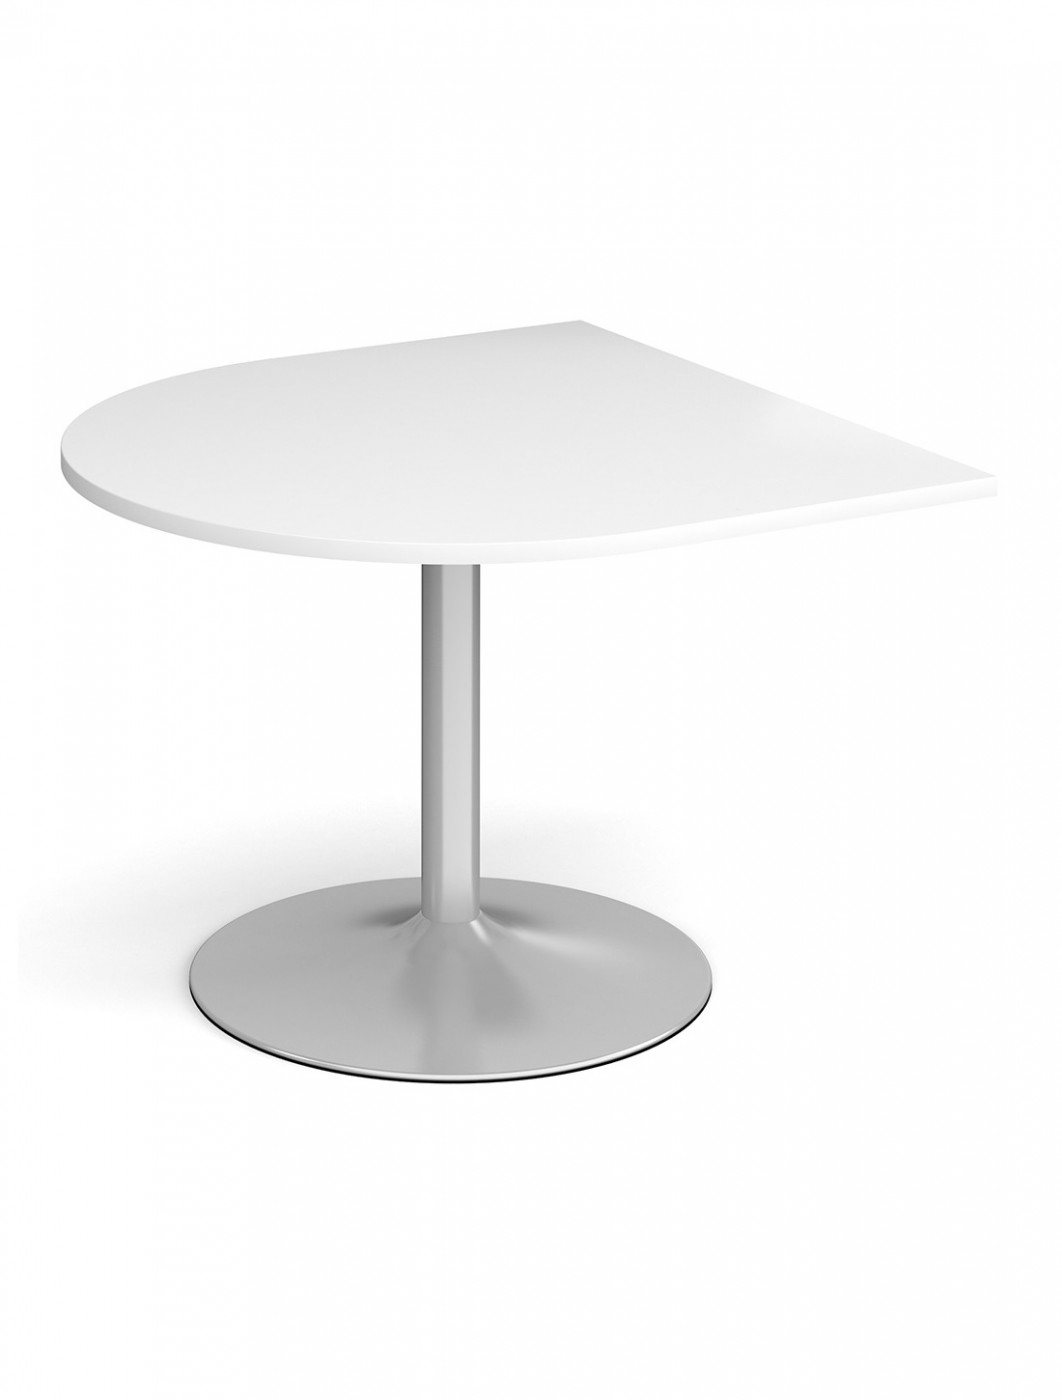 Dams Radial Extension Table with Silver Trumpet Base TB10D-S